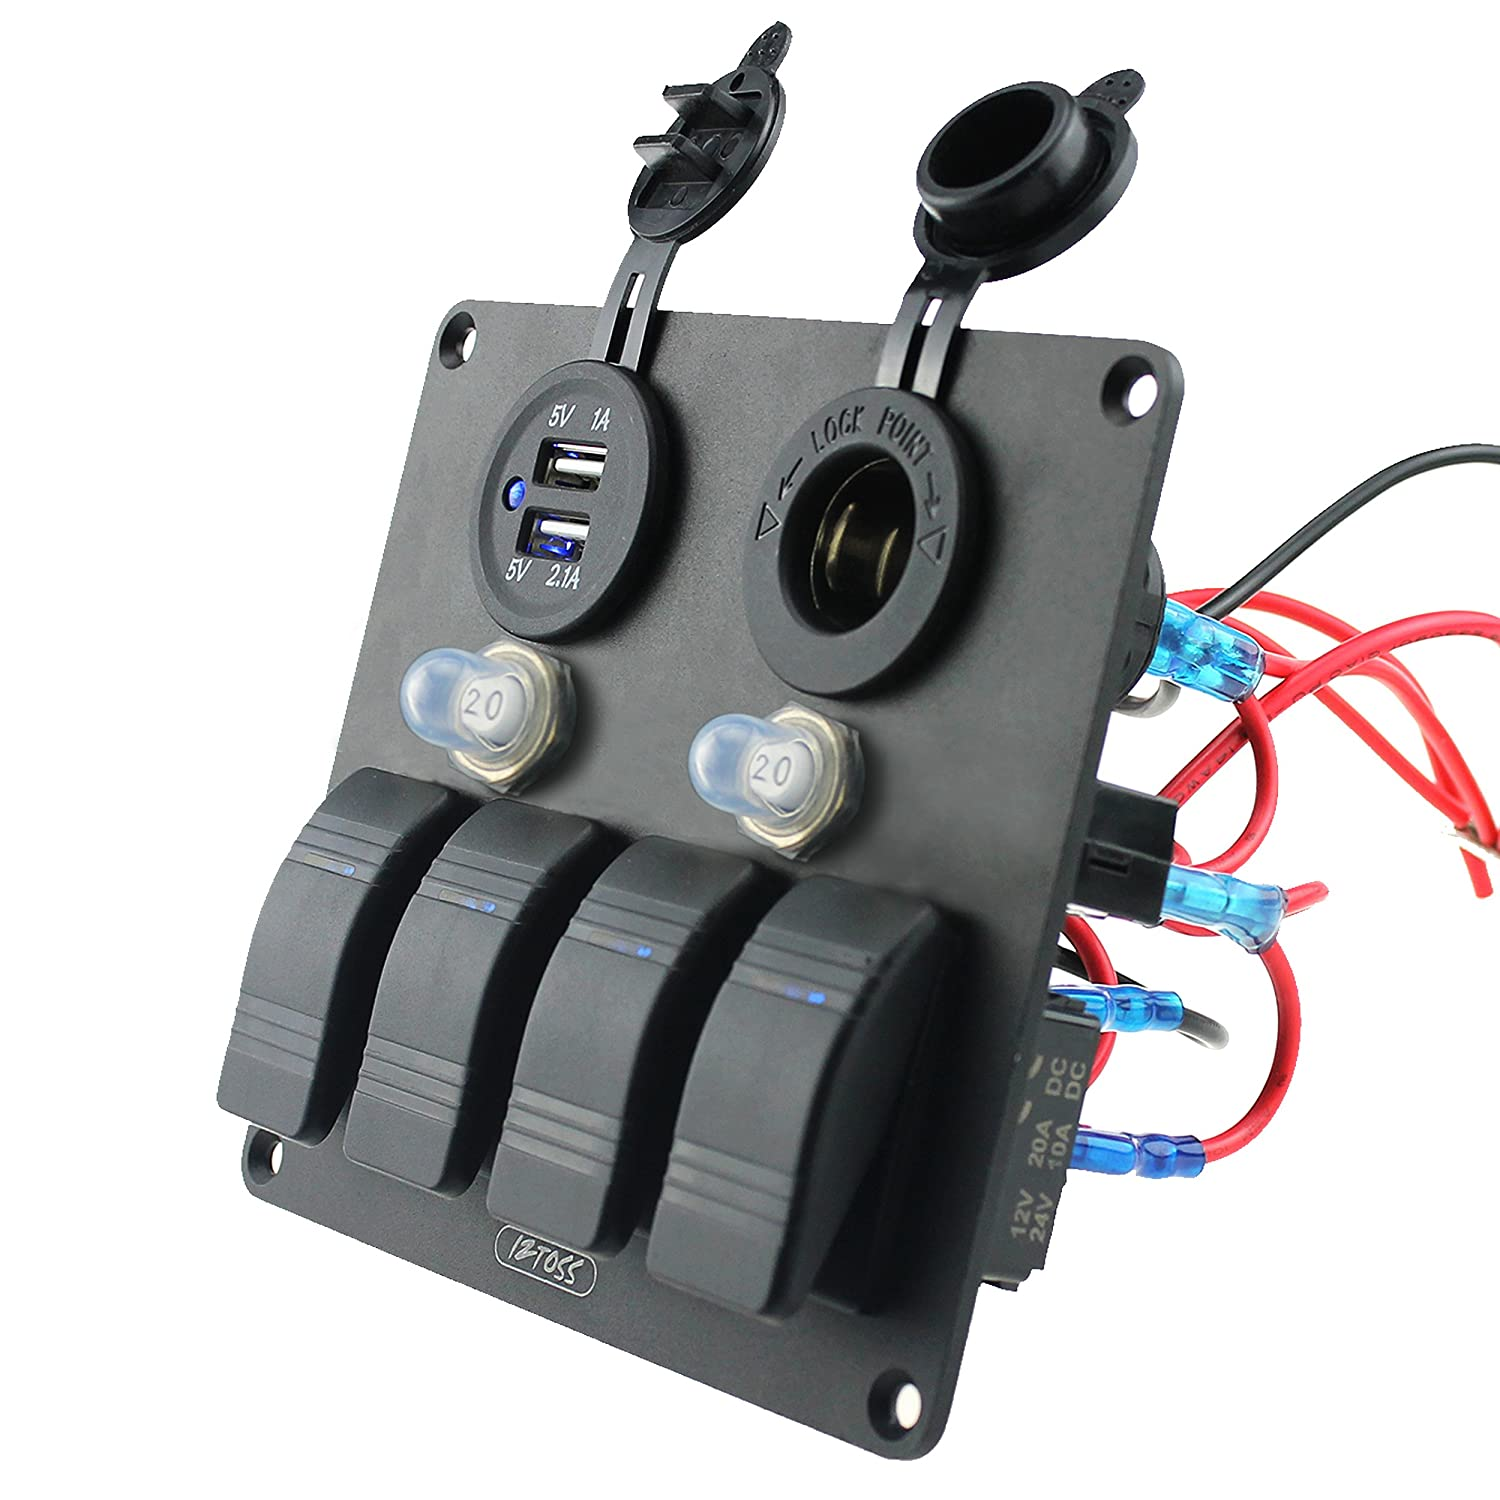 Iztoss 4 Gang Aluminium 3pin Rocker Toggle Switch Panel With Wire Wiring Diagram Also Automotive Waterproof Circuit Breaker Power Charger Socket